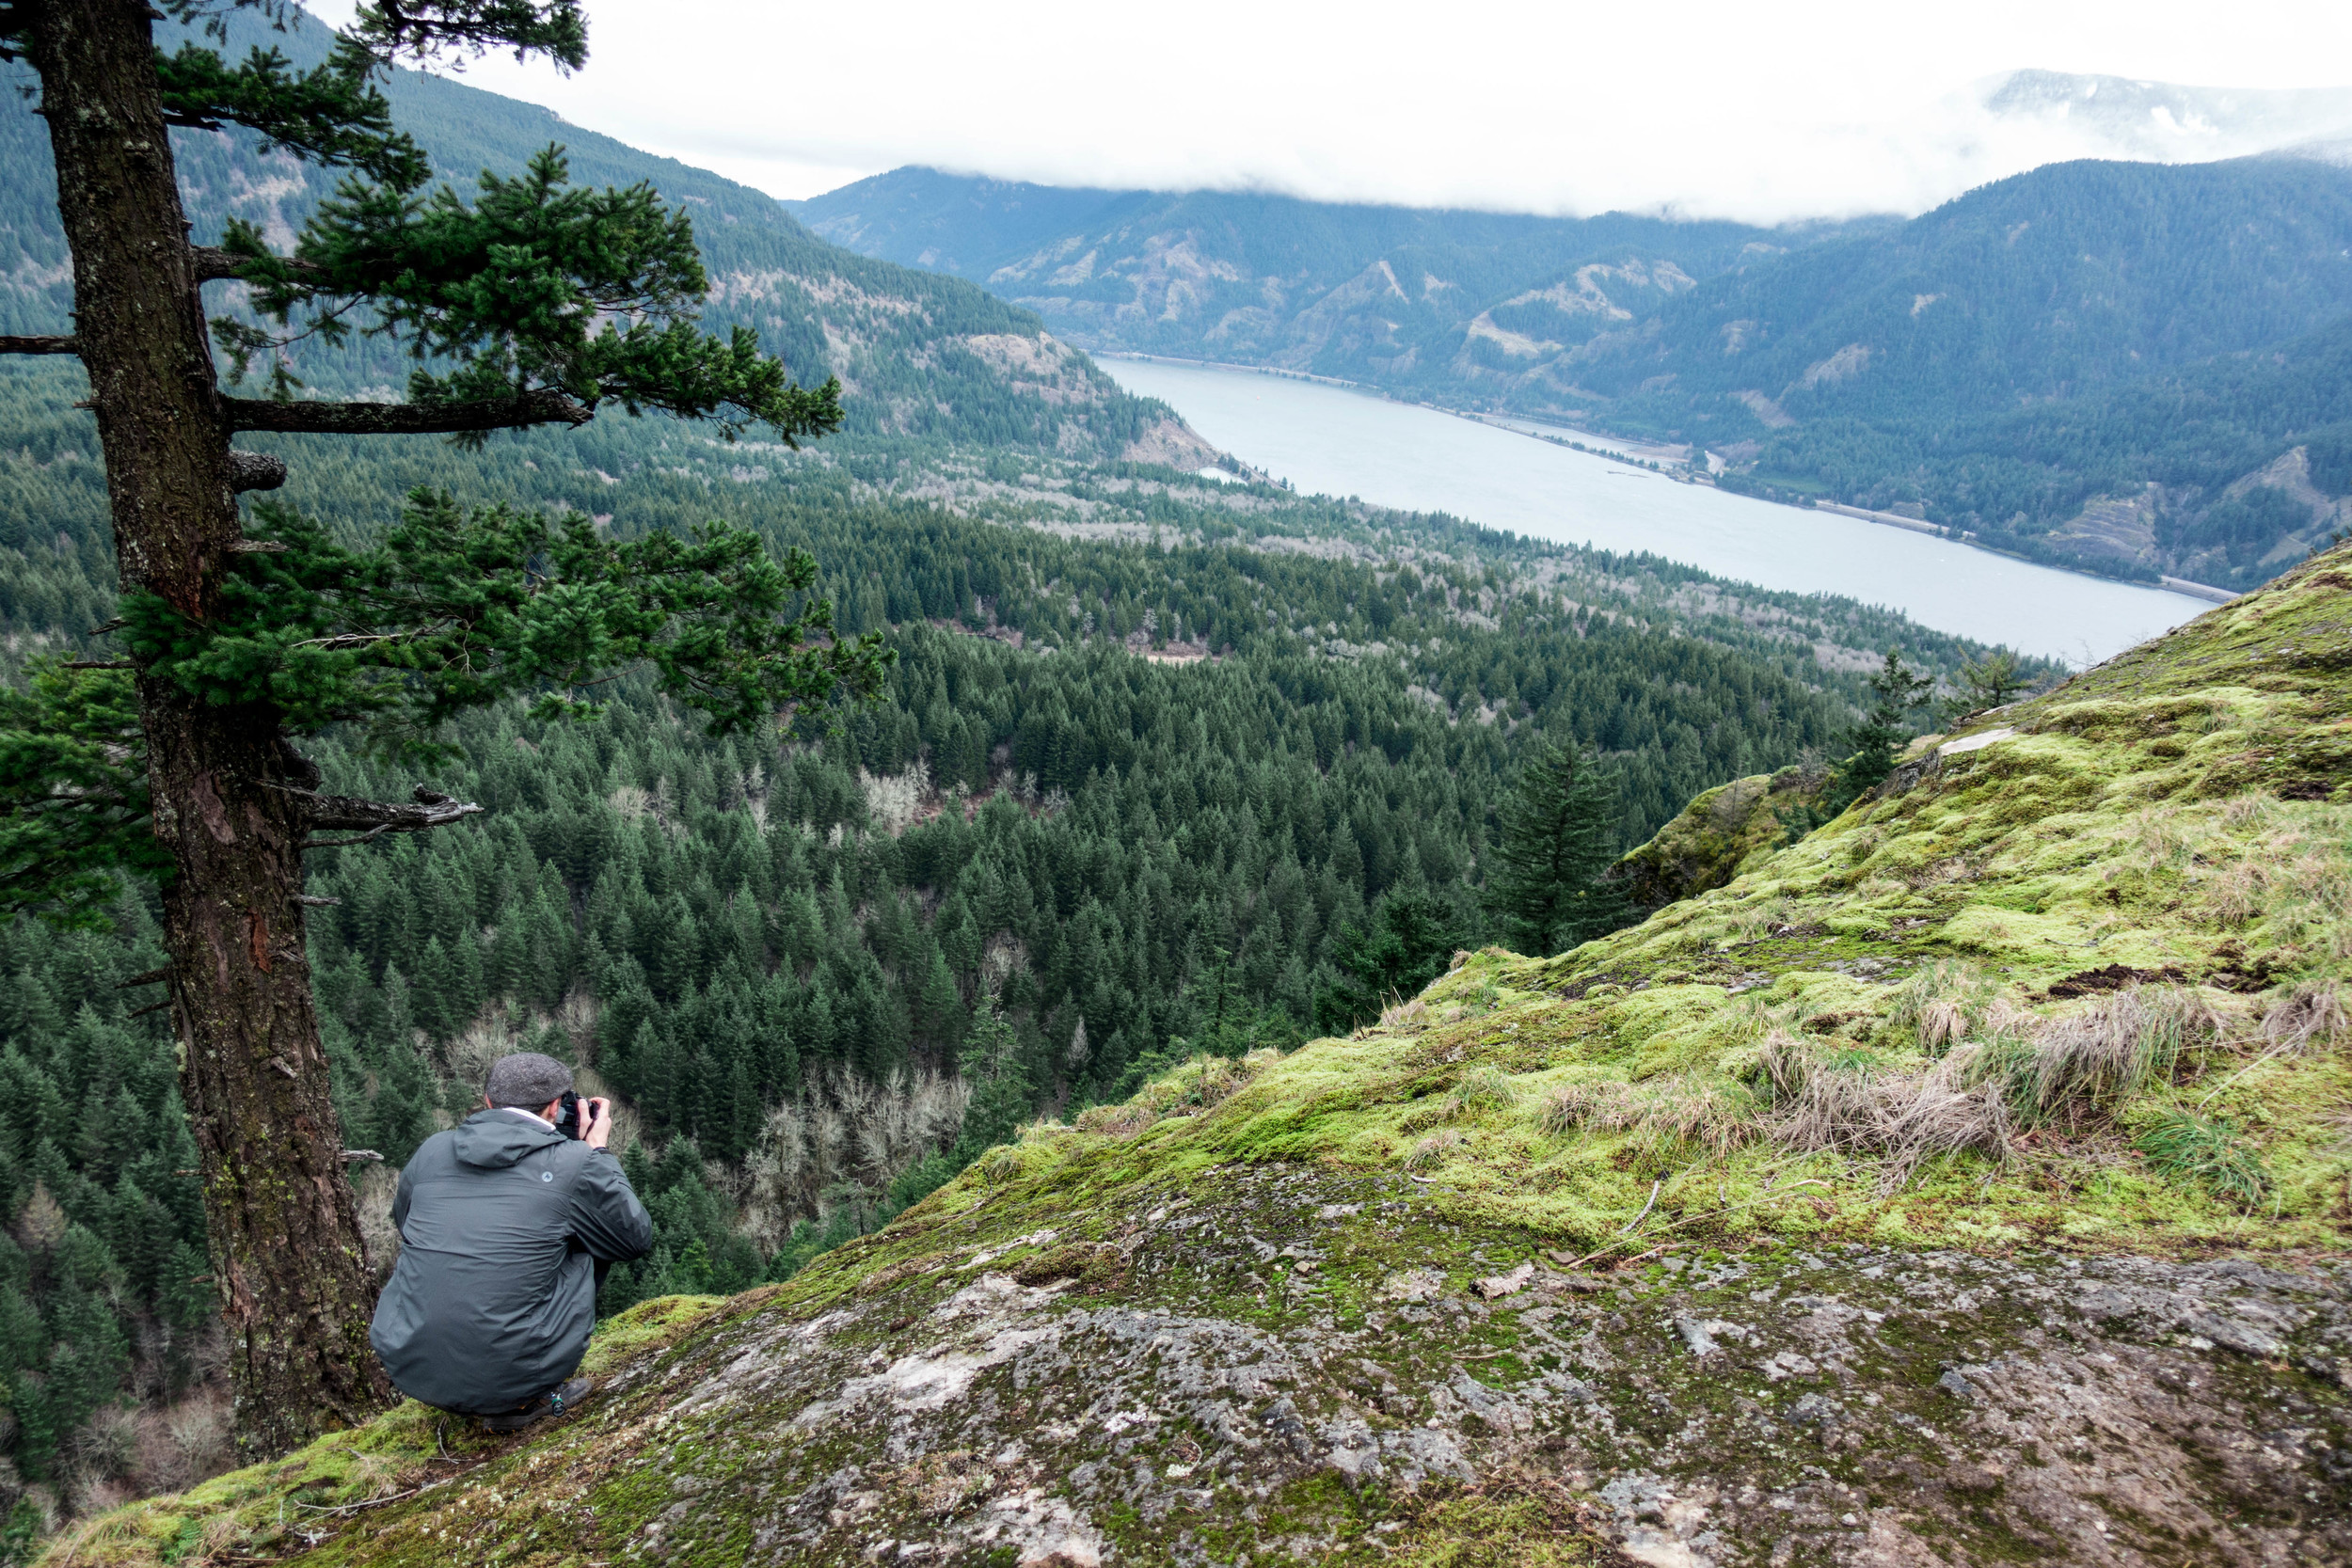 Viewpoint at Wind Mountain | Columbia River Gorge, WA